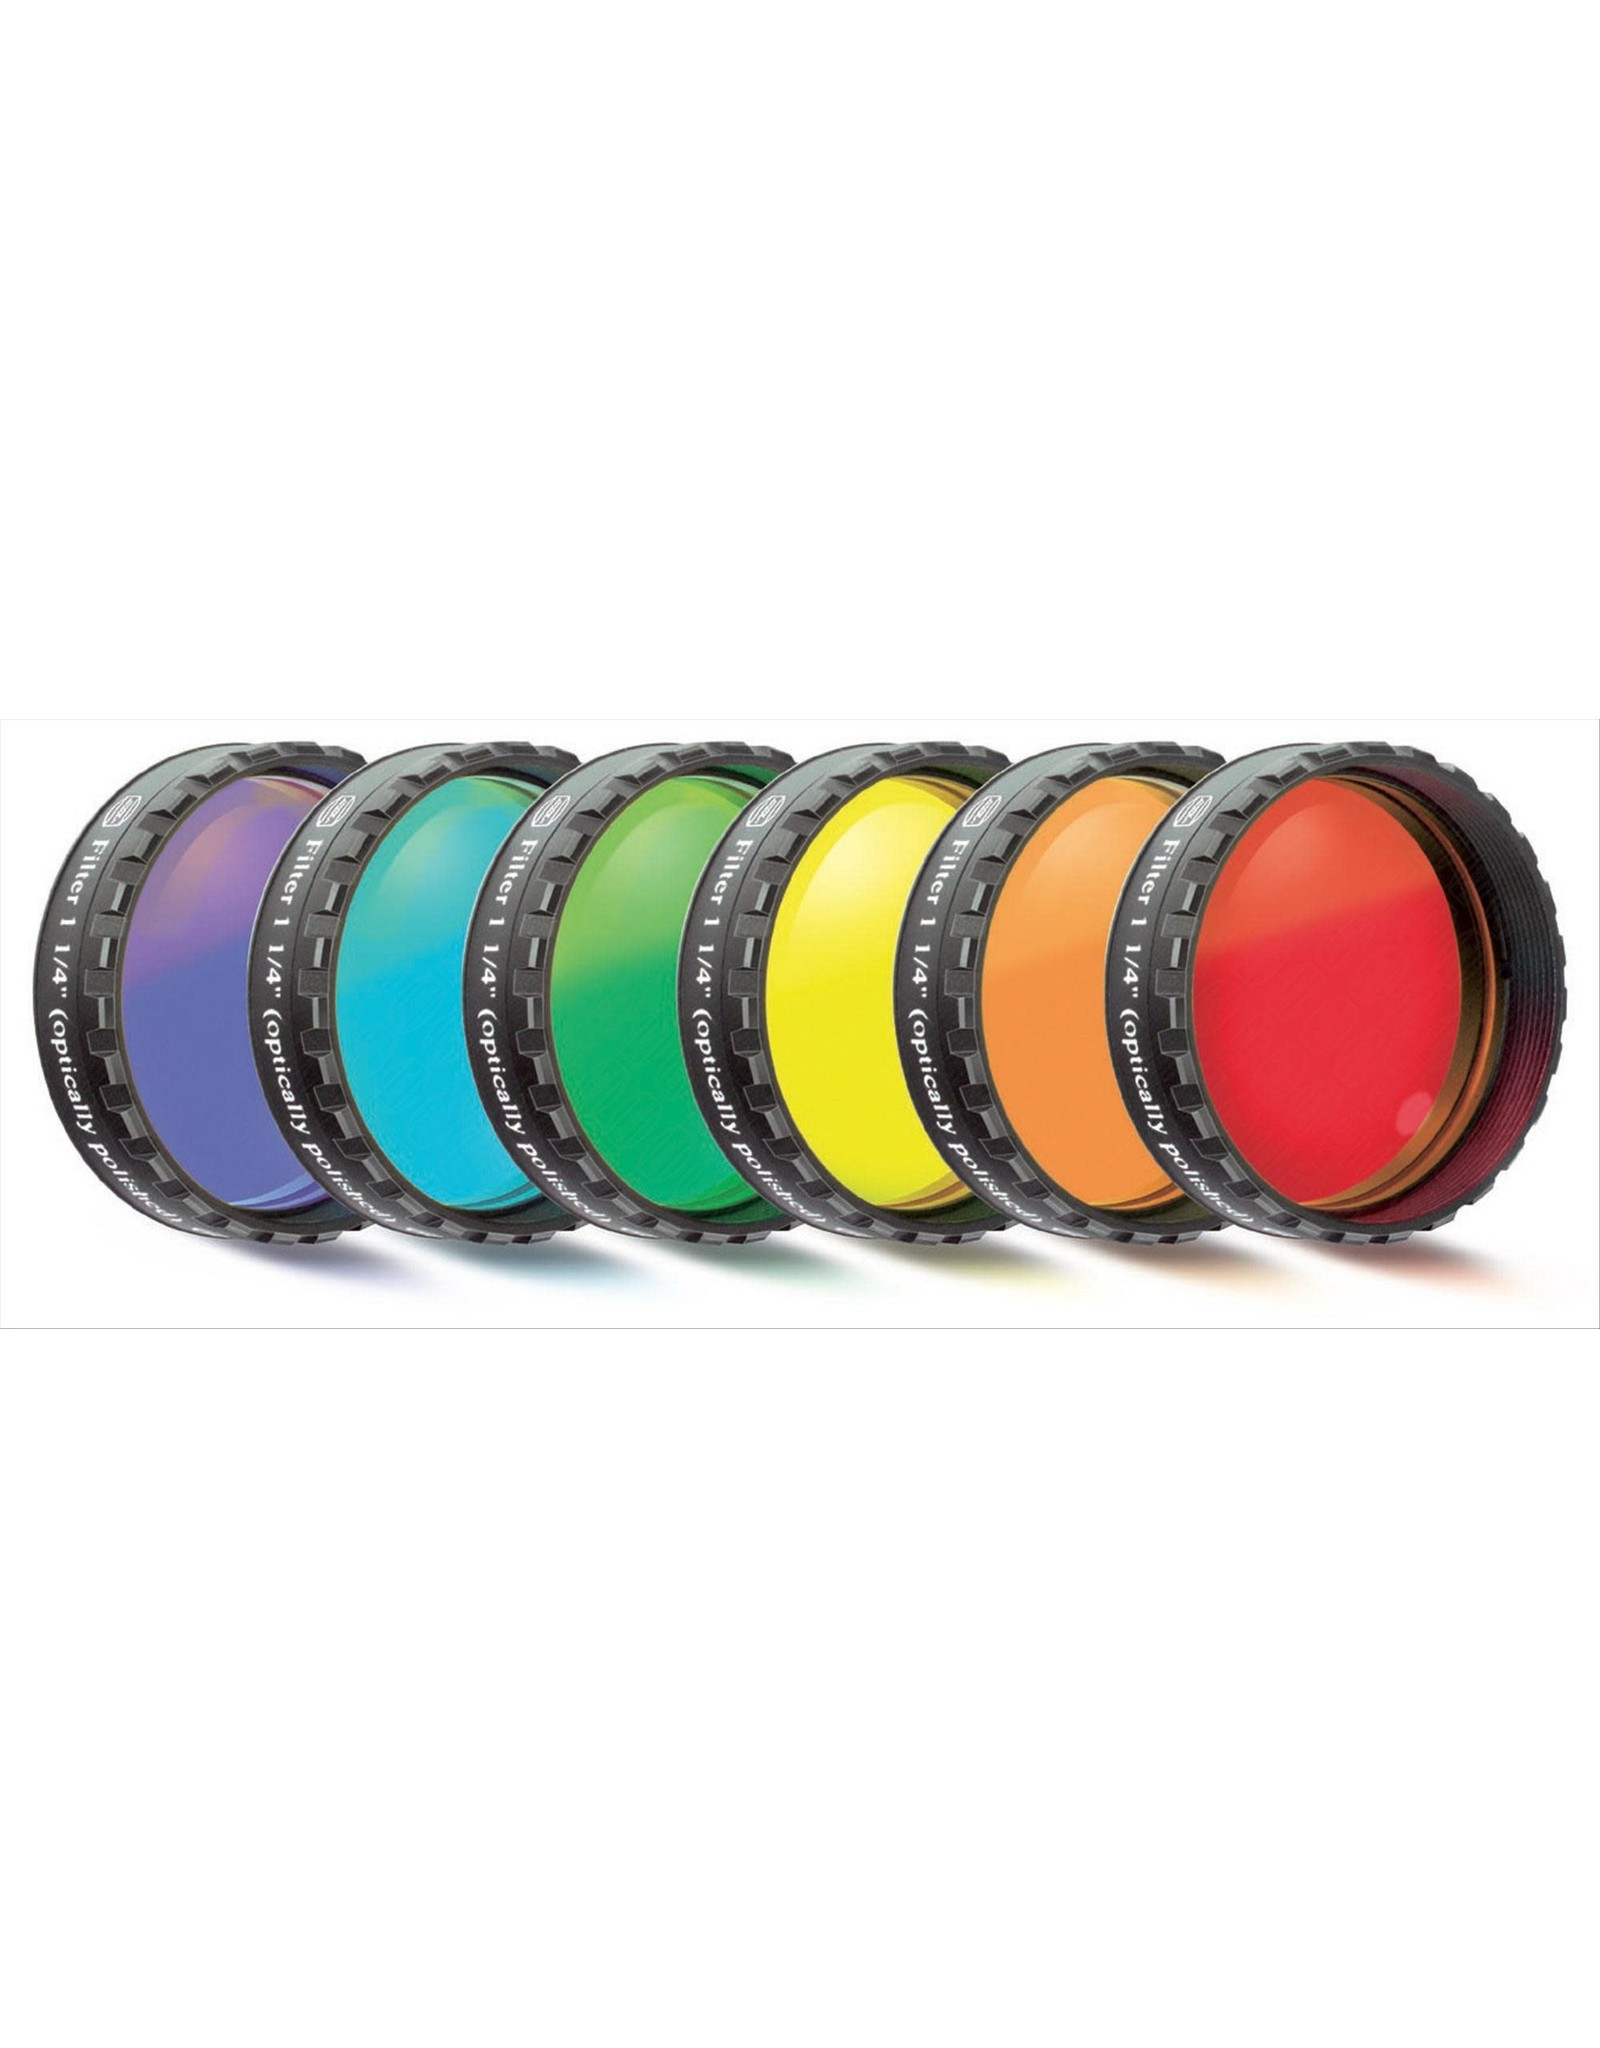 Baader Planetarium Baader Color Filter-Set Moon and Planetary (6 colors) (Specify Size)